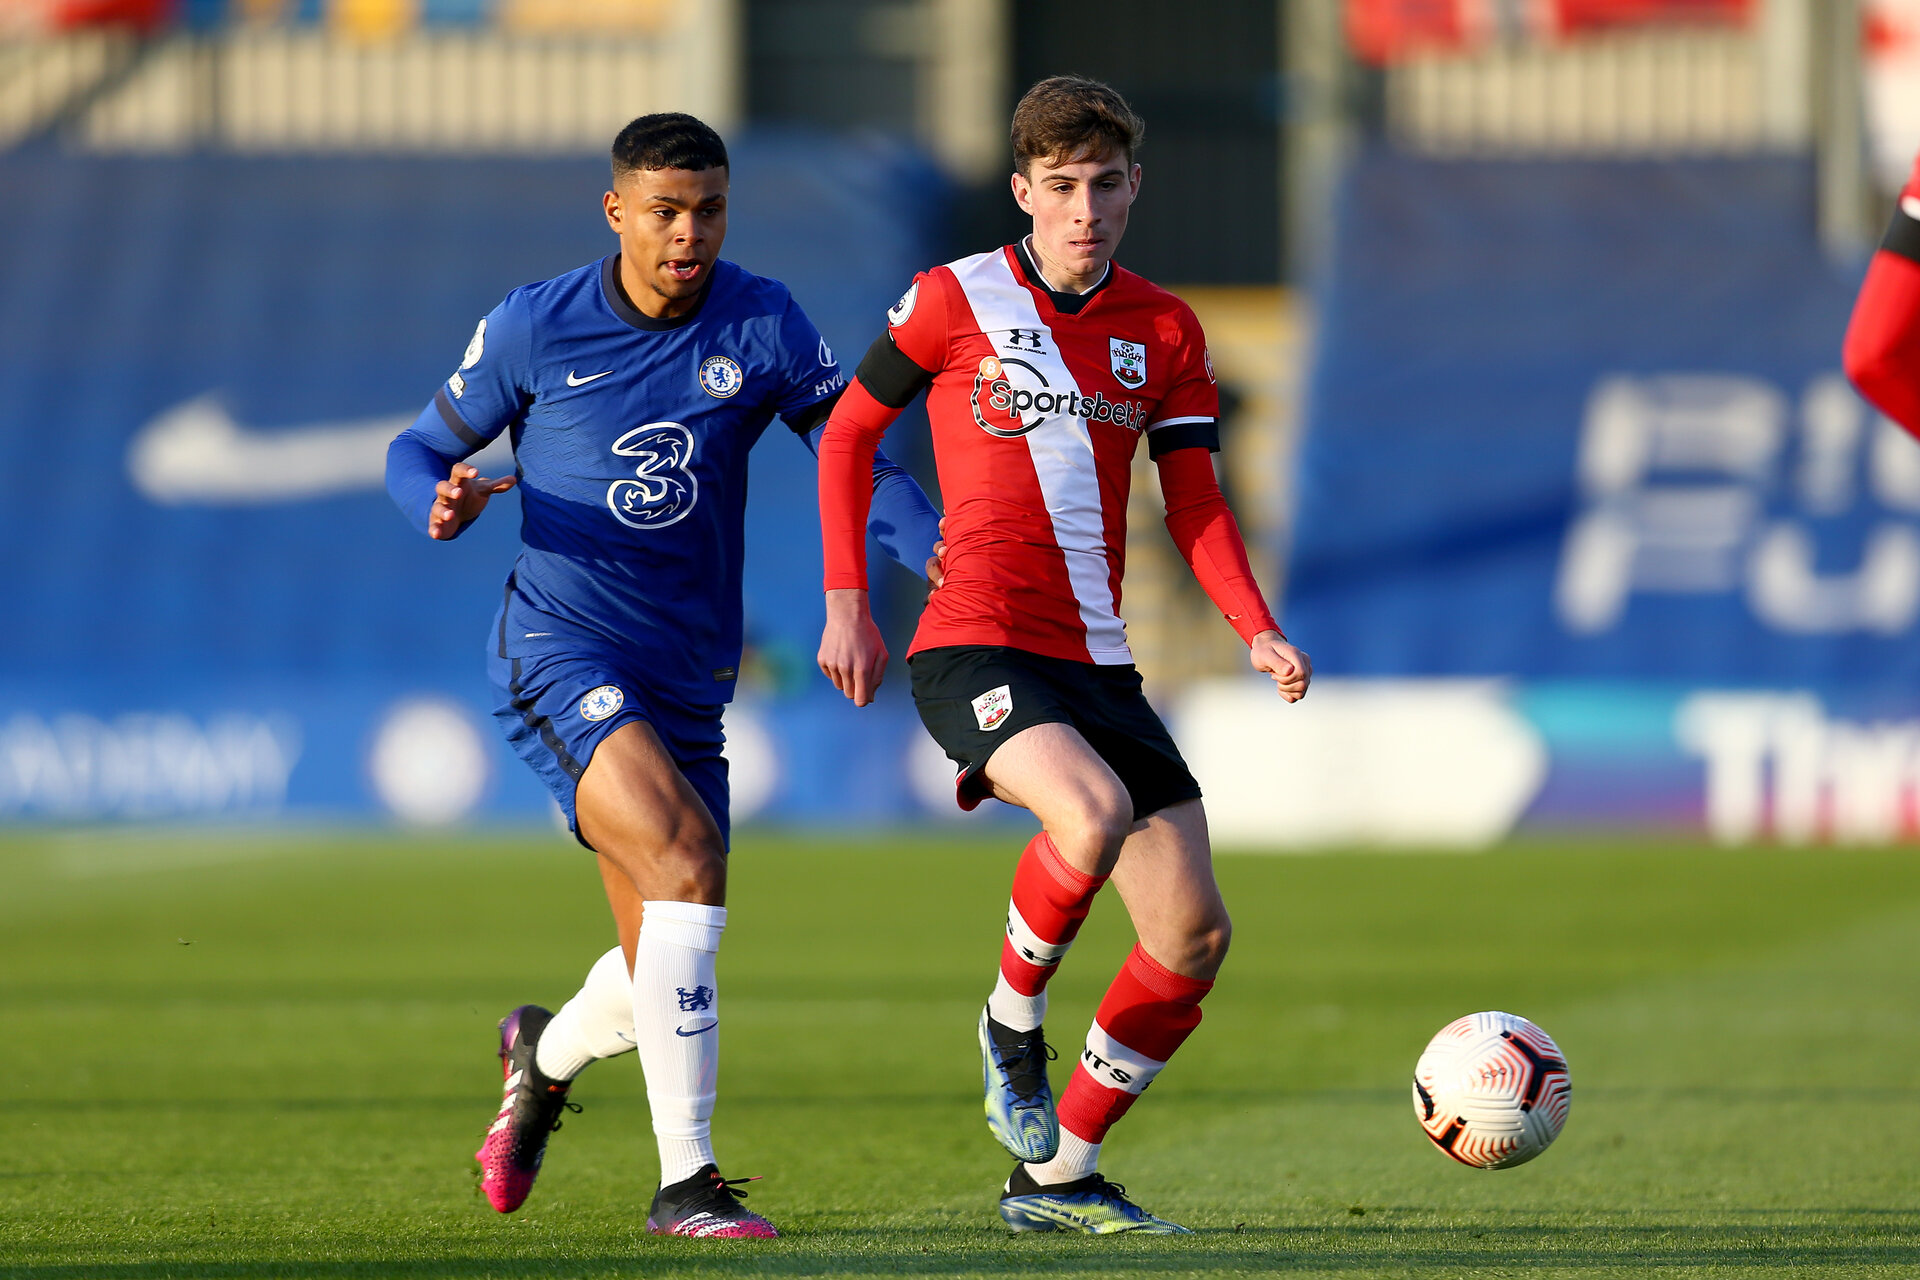 KINGSTON UPON THAMES, LONDON, ENGLAND - APRIL 12: James Morris (R) of Southampton during the Premier League 2 match between U23 Chelsea FC and Southampton B Team at the Kingsmeadow Stadium on April 12, 2021 in Kingston upon Thames, London, England.  (Photo by Isabelle Field/Southampton FC via Getty Images)